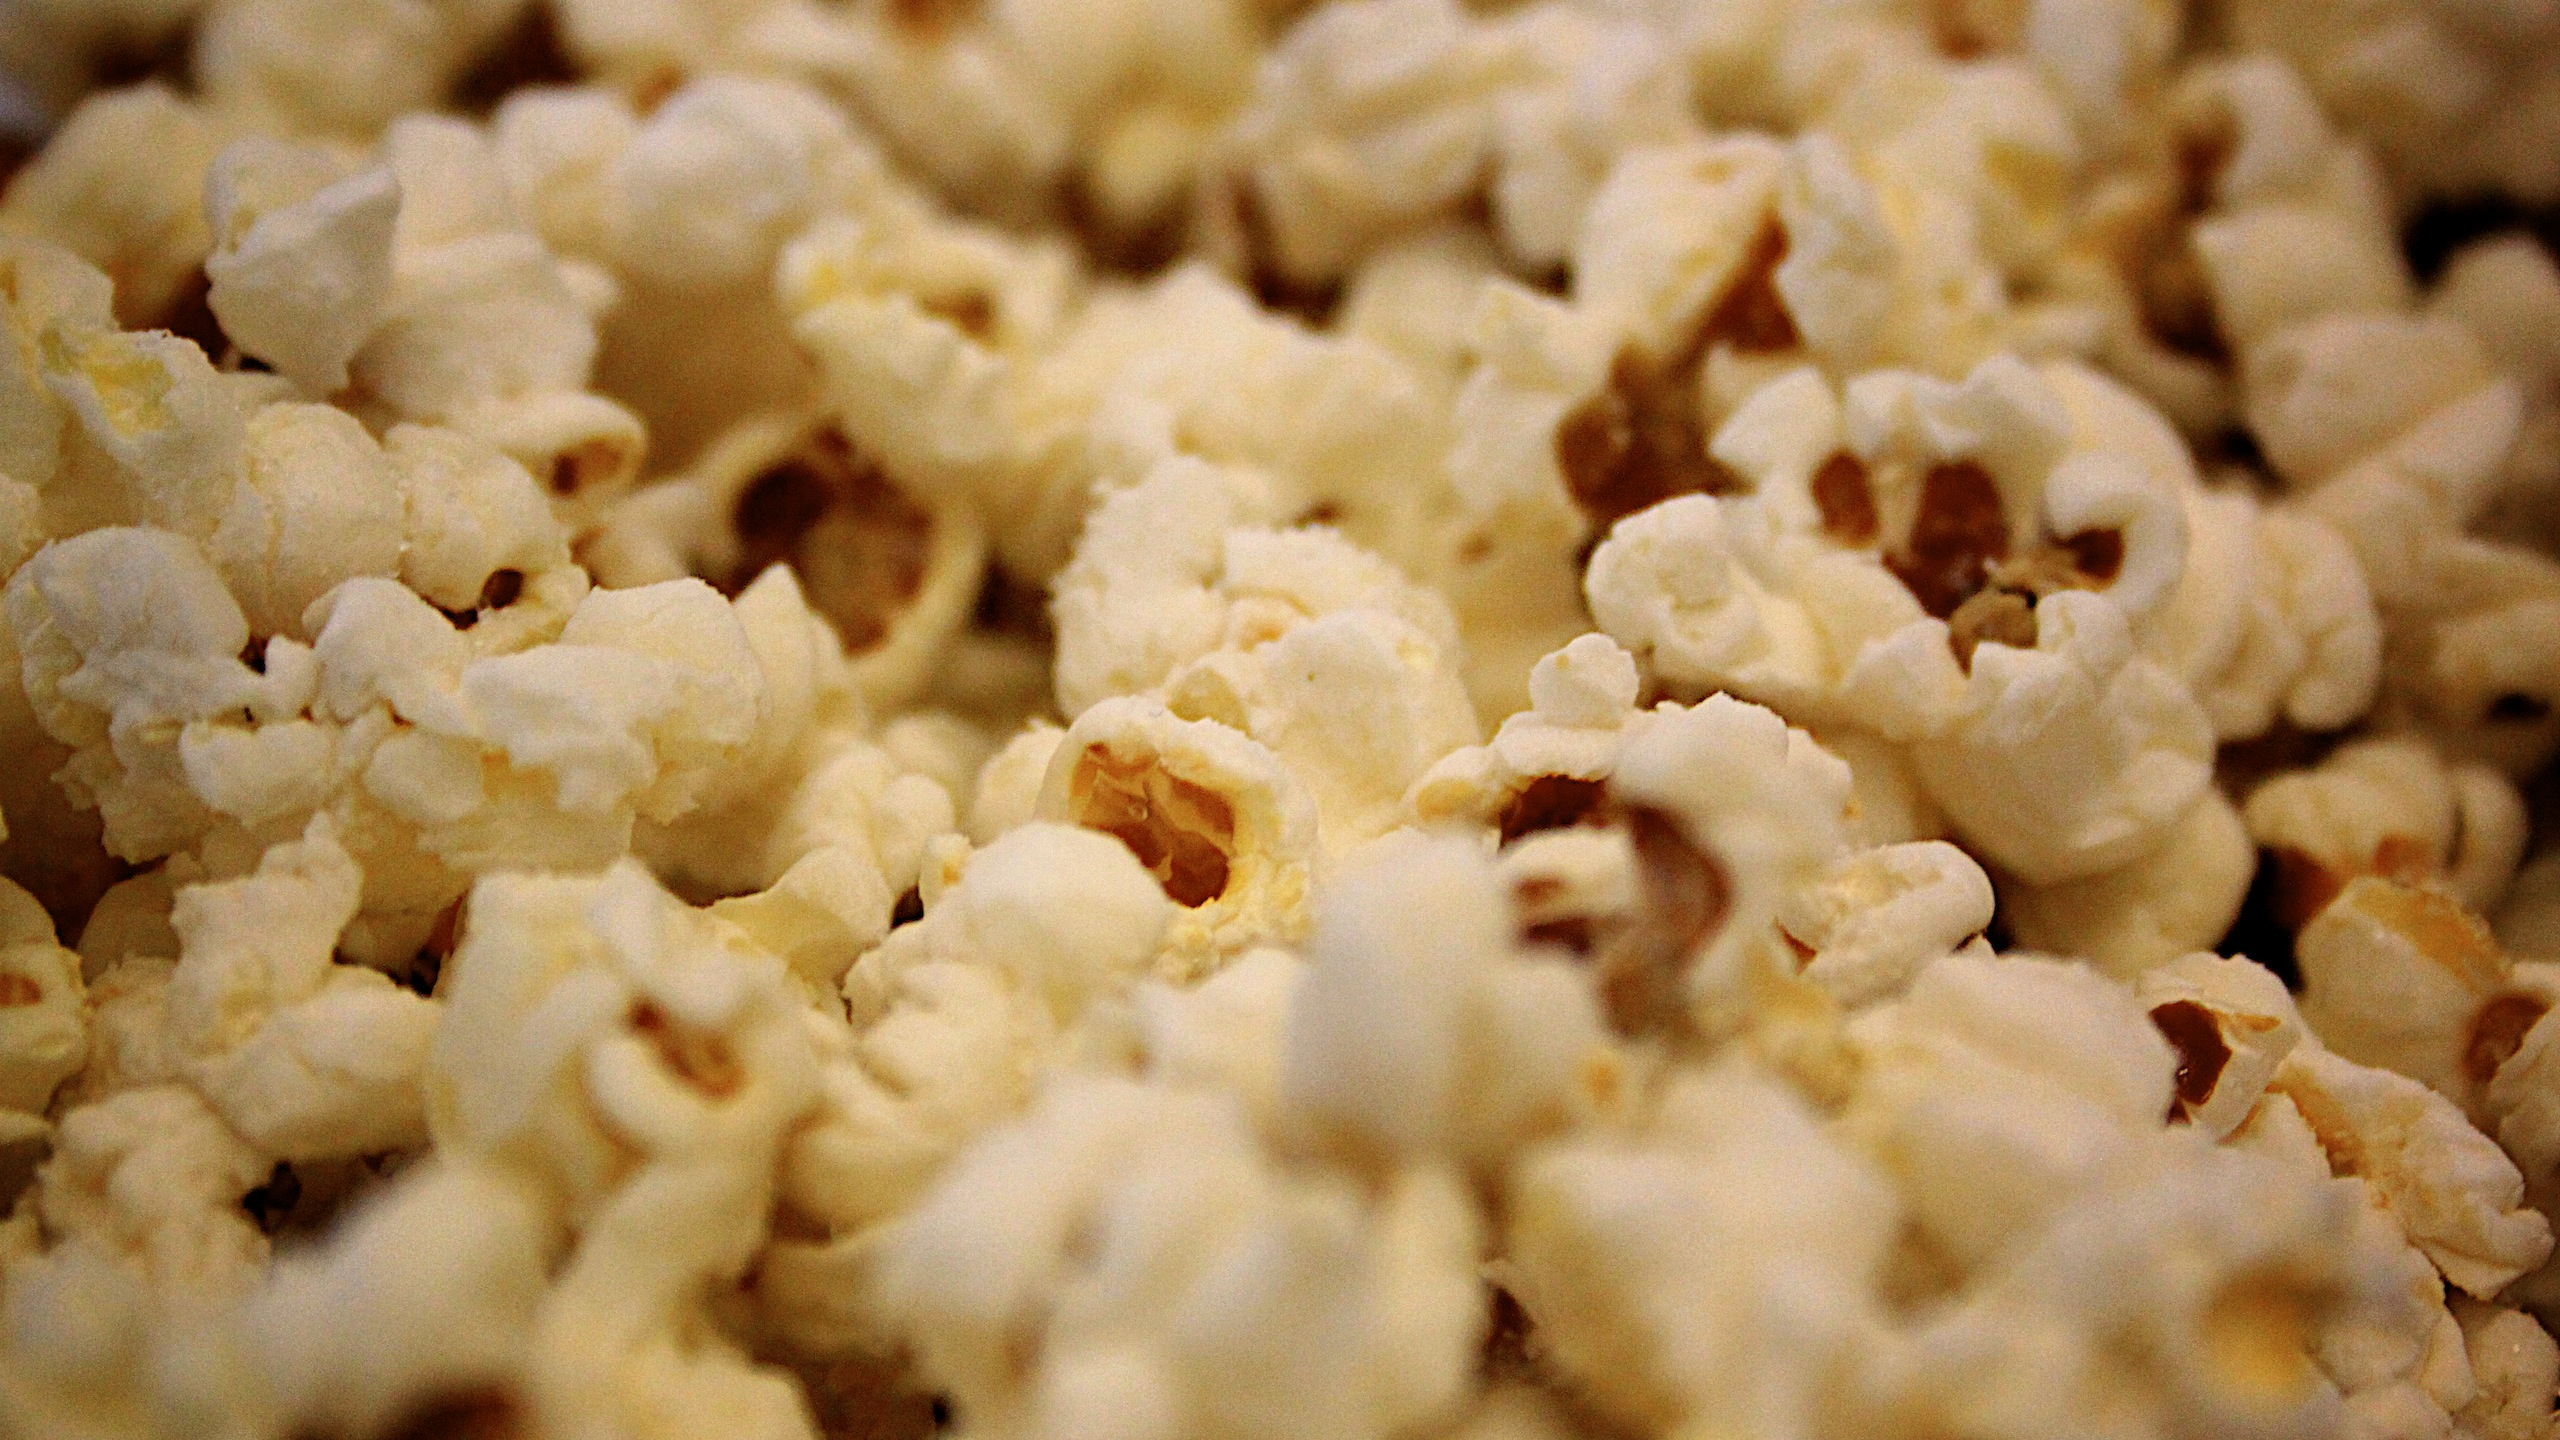 popcorn close up background hd wallpaper 66878